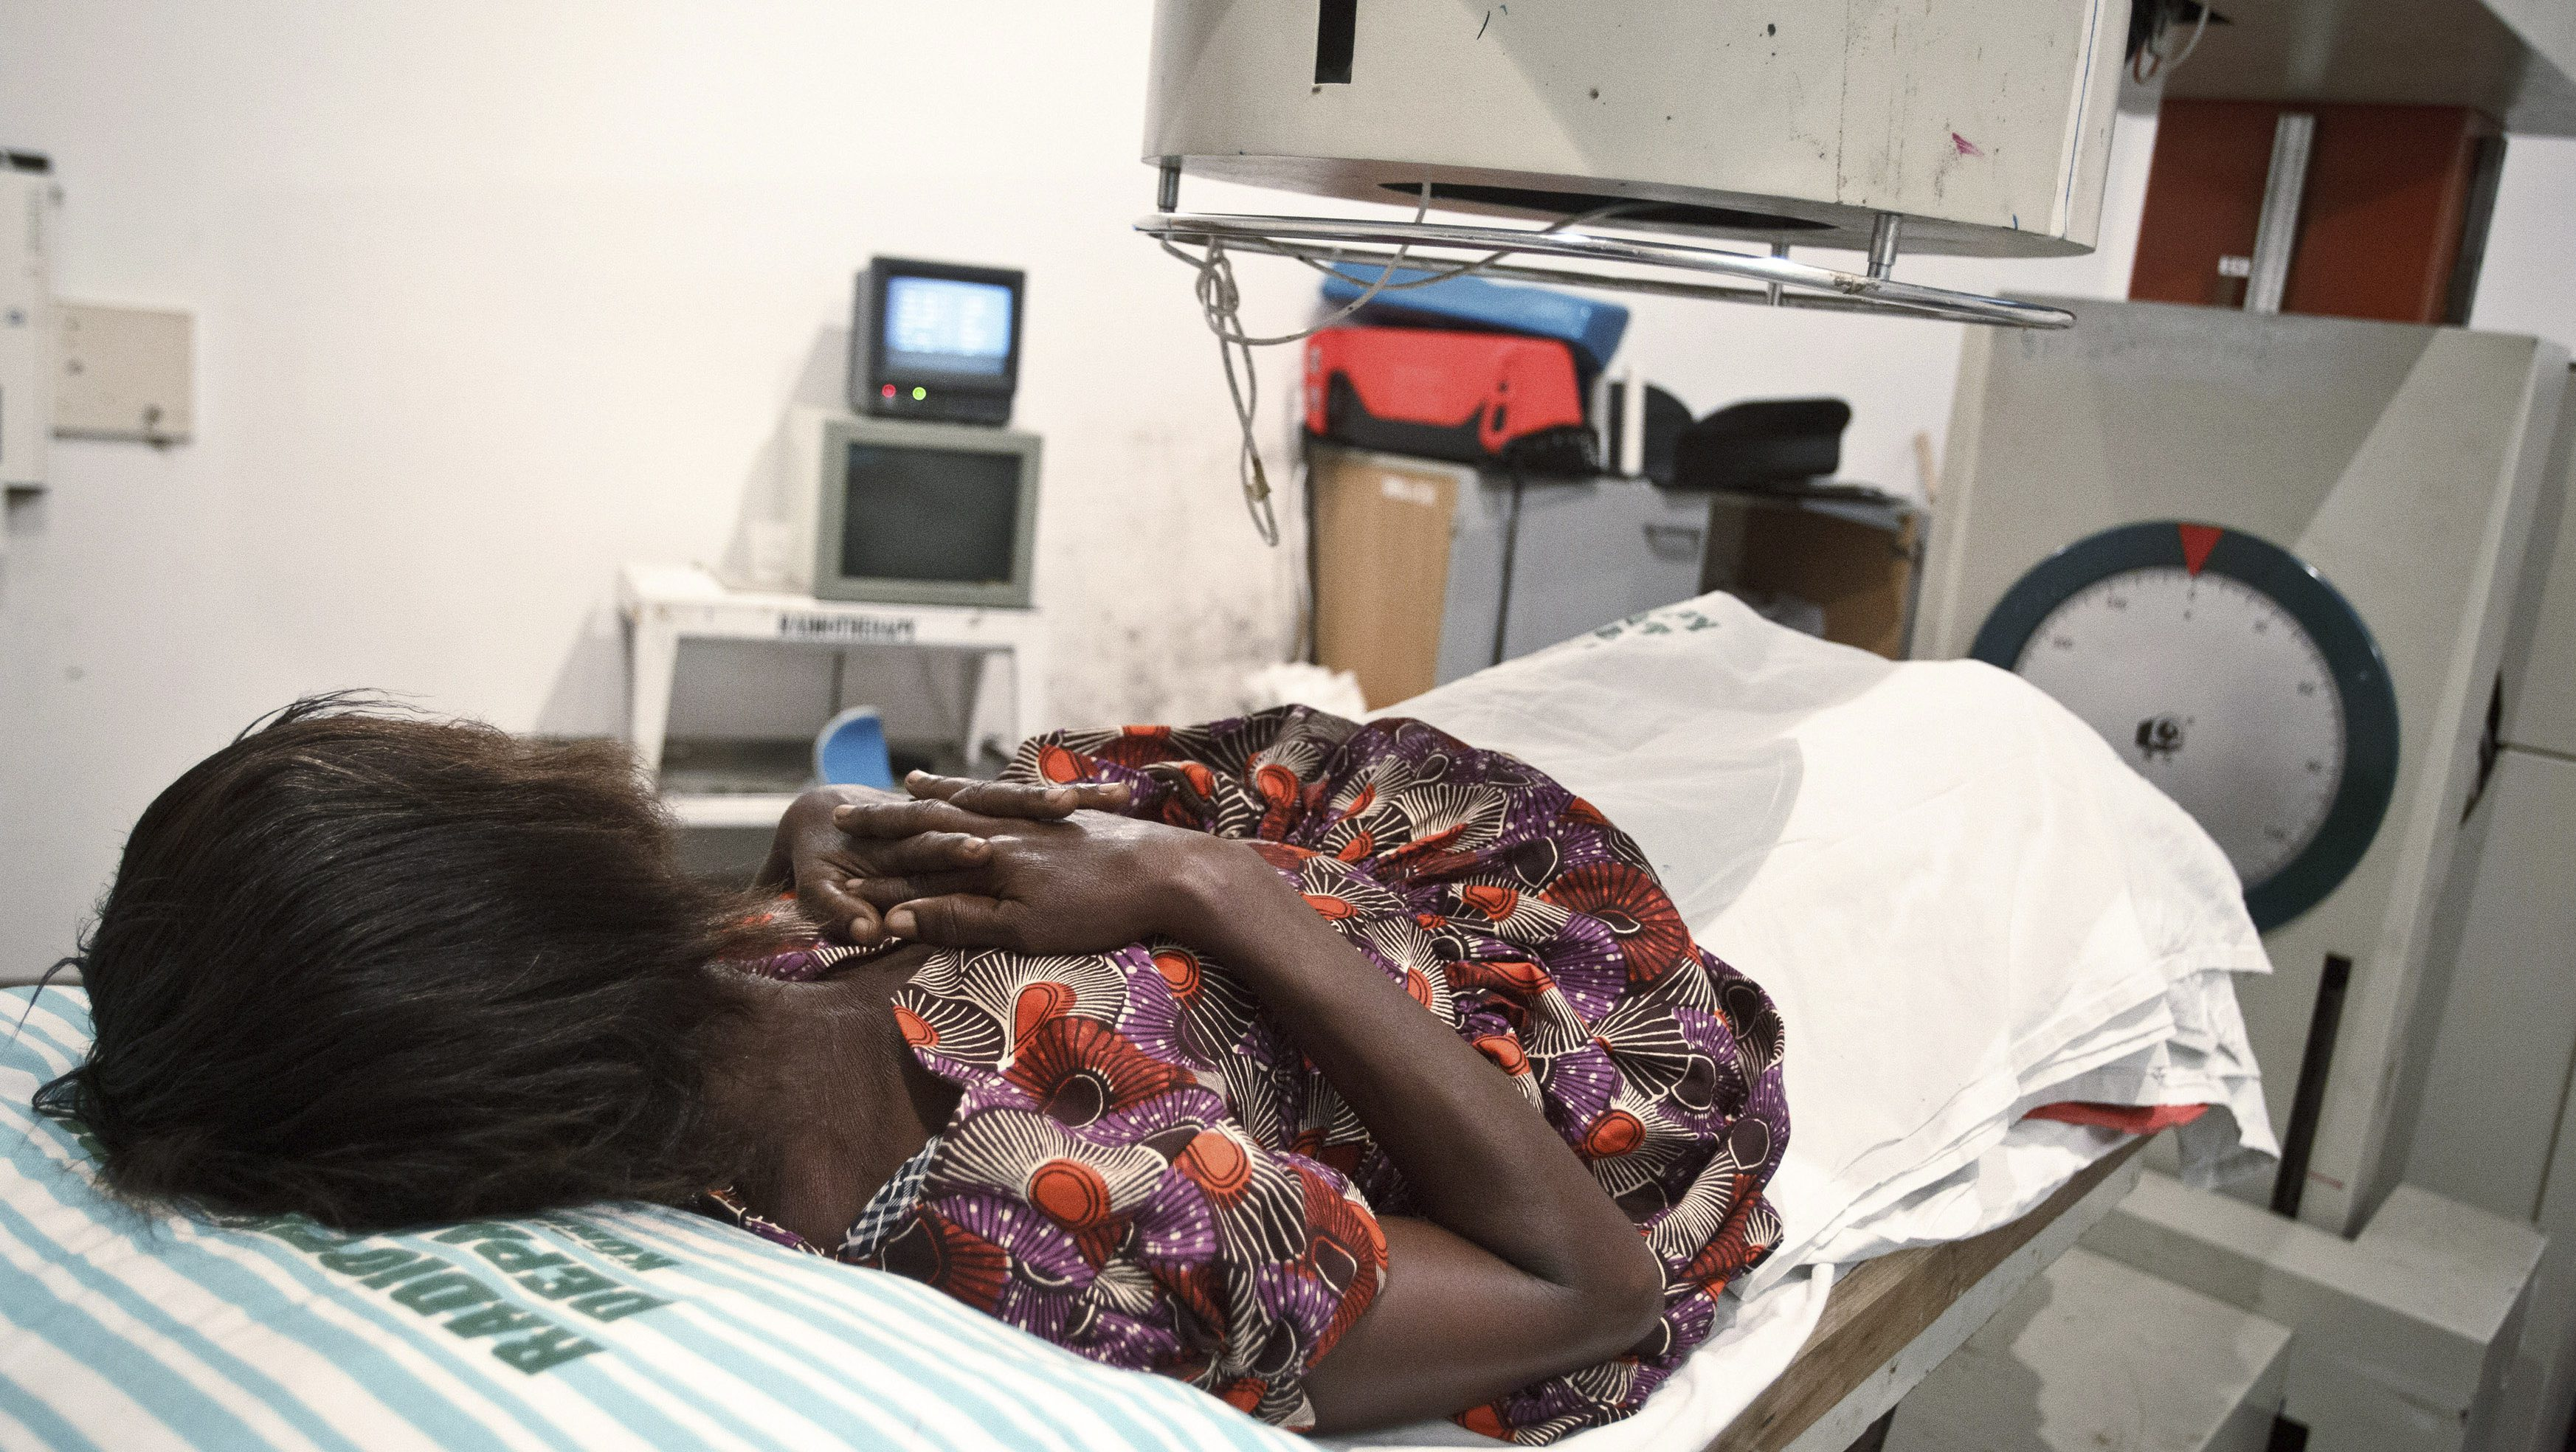 A 52-year-old woman suffering from bladder cancer lies under a radiotherapy simulator used to pinpoint areas to treat at the Korle Bu Teaching Hospital in Accra April 24, 2012. Most of Africa's around 2,000 languages have no word for cancer. The common perception in both developing and developed countries is that it's a disease of the wealthy world, where high-fat, processed-food diets, alcohol, smoking and sedentary lifestyles fuel tumour growth.   Yet there are an estimated one million new cancer cases sub-Saharan Africa will see this year - a number predicted to double to 2 million a year in the next decade.      Picture taken April 24, 2012. To match Insight CANCER-AFRICA/GHANA    REUTERS/Olivier Asselin (GHANA - Tags: HEALTH SOCIETY) - RTR31FSH